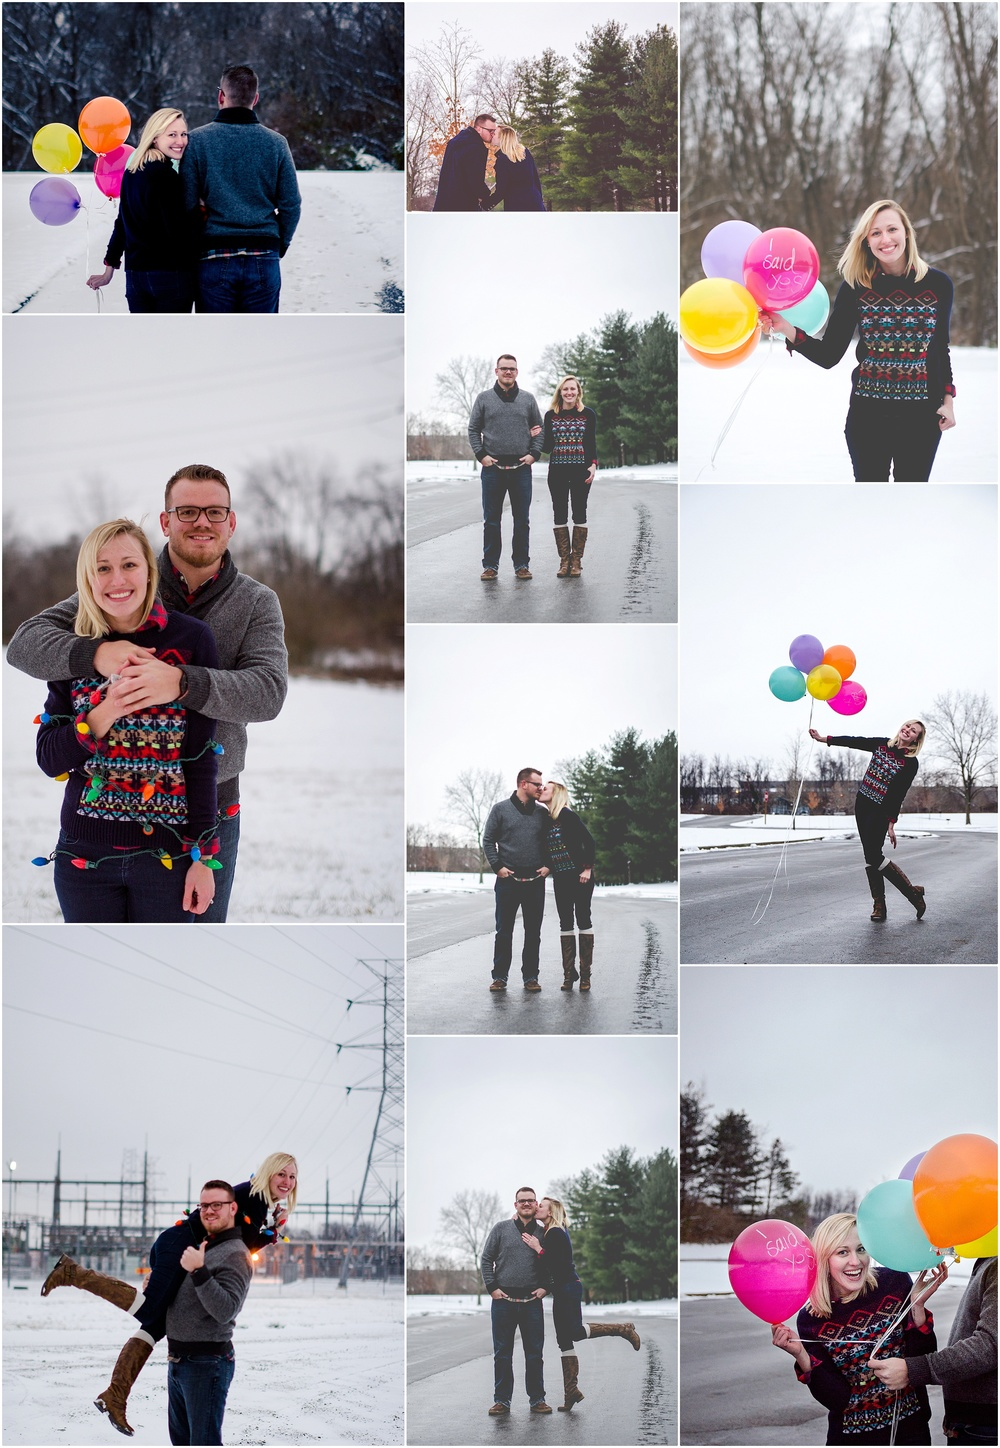 Who says a winter shoot can't be fun too! Since Alissa and Michael got engaged...let me see...the day before Christmas (yes, Michael killed it). - If you want to spice up a winter shoot: balloons, lights, or great sweaters are a great touch.